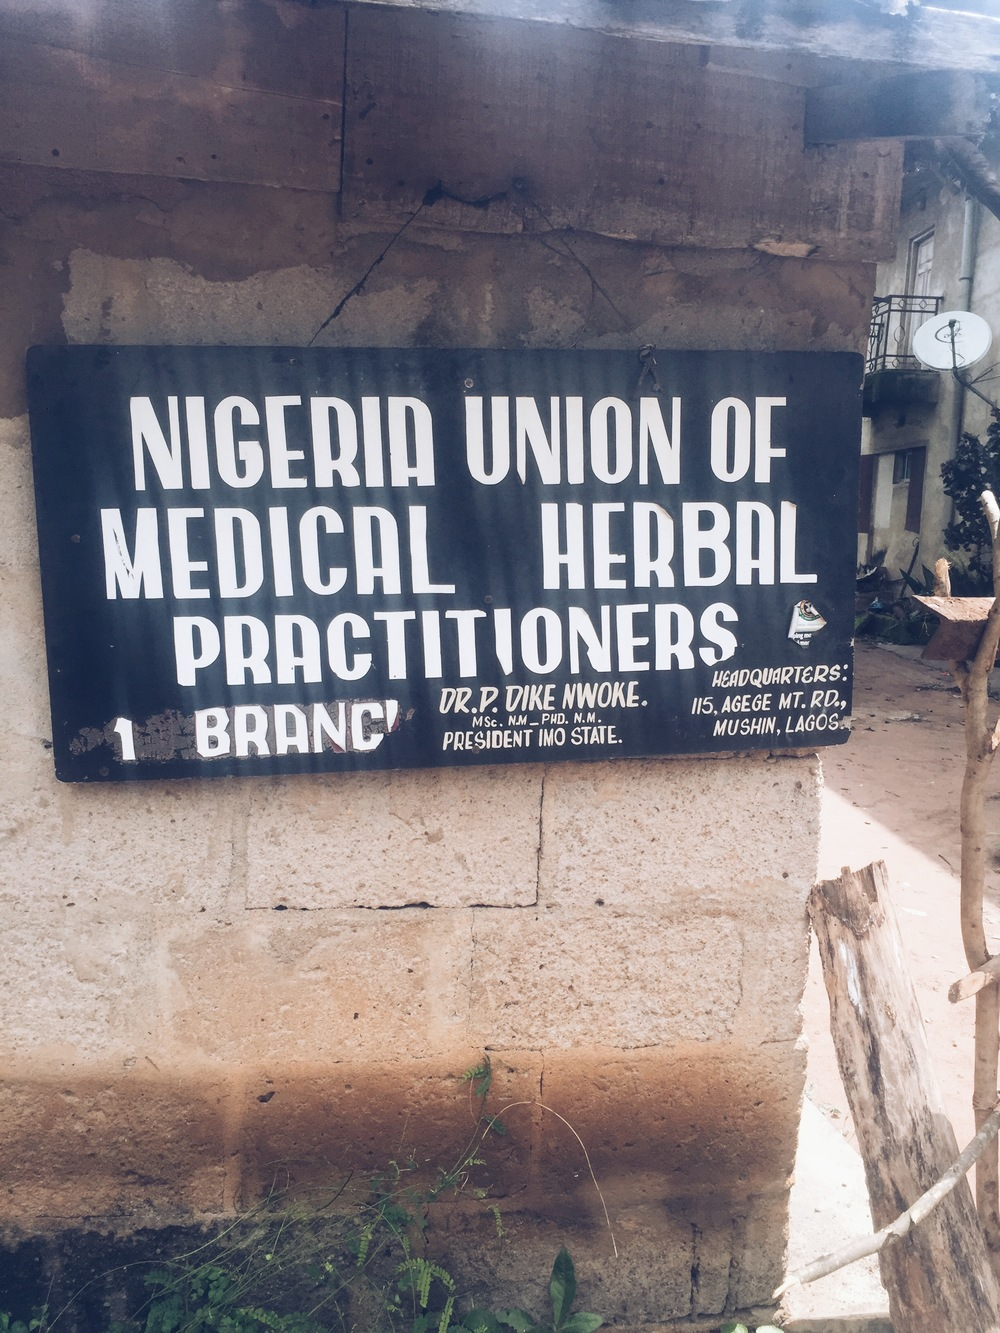 Sign at the Village in Owerri